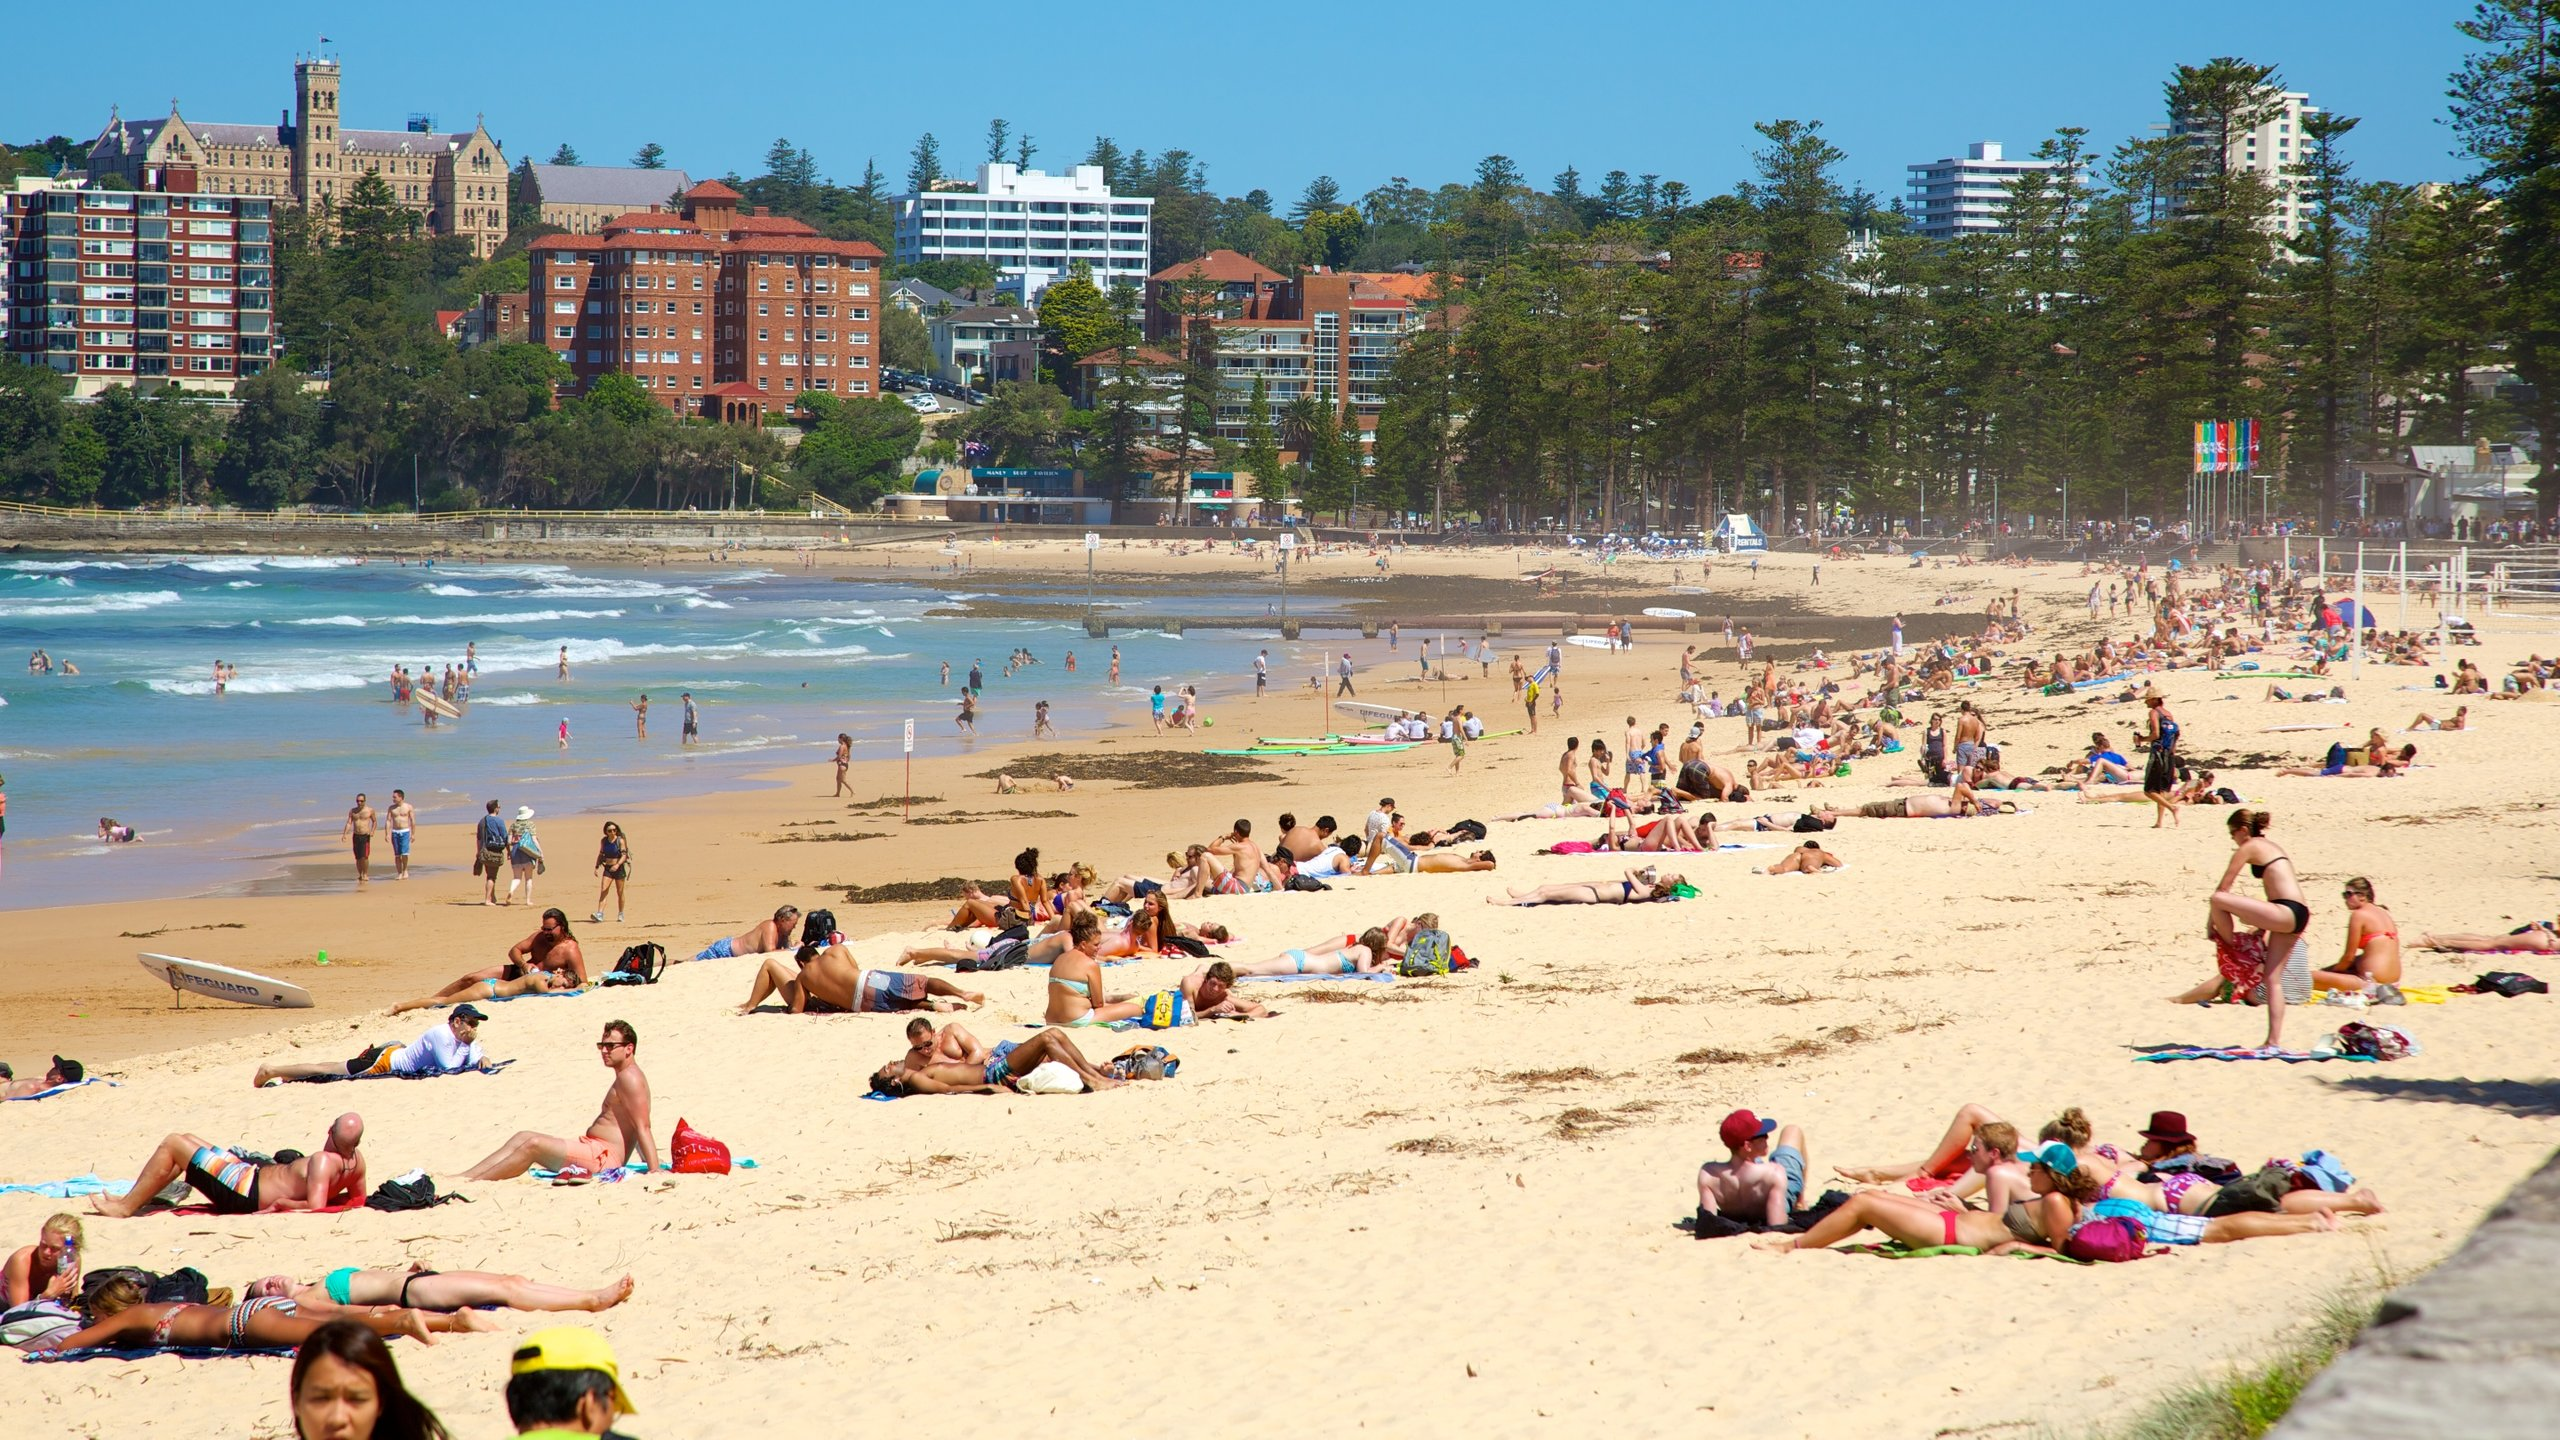 Manly, Sydney, New South Wales, Australia